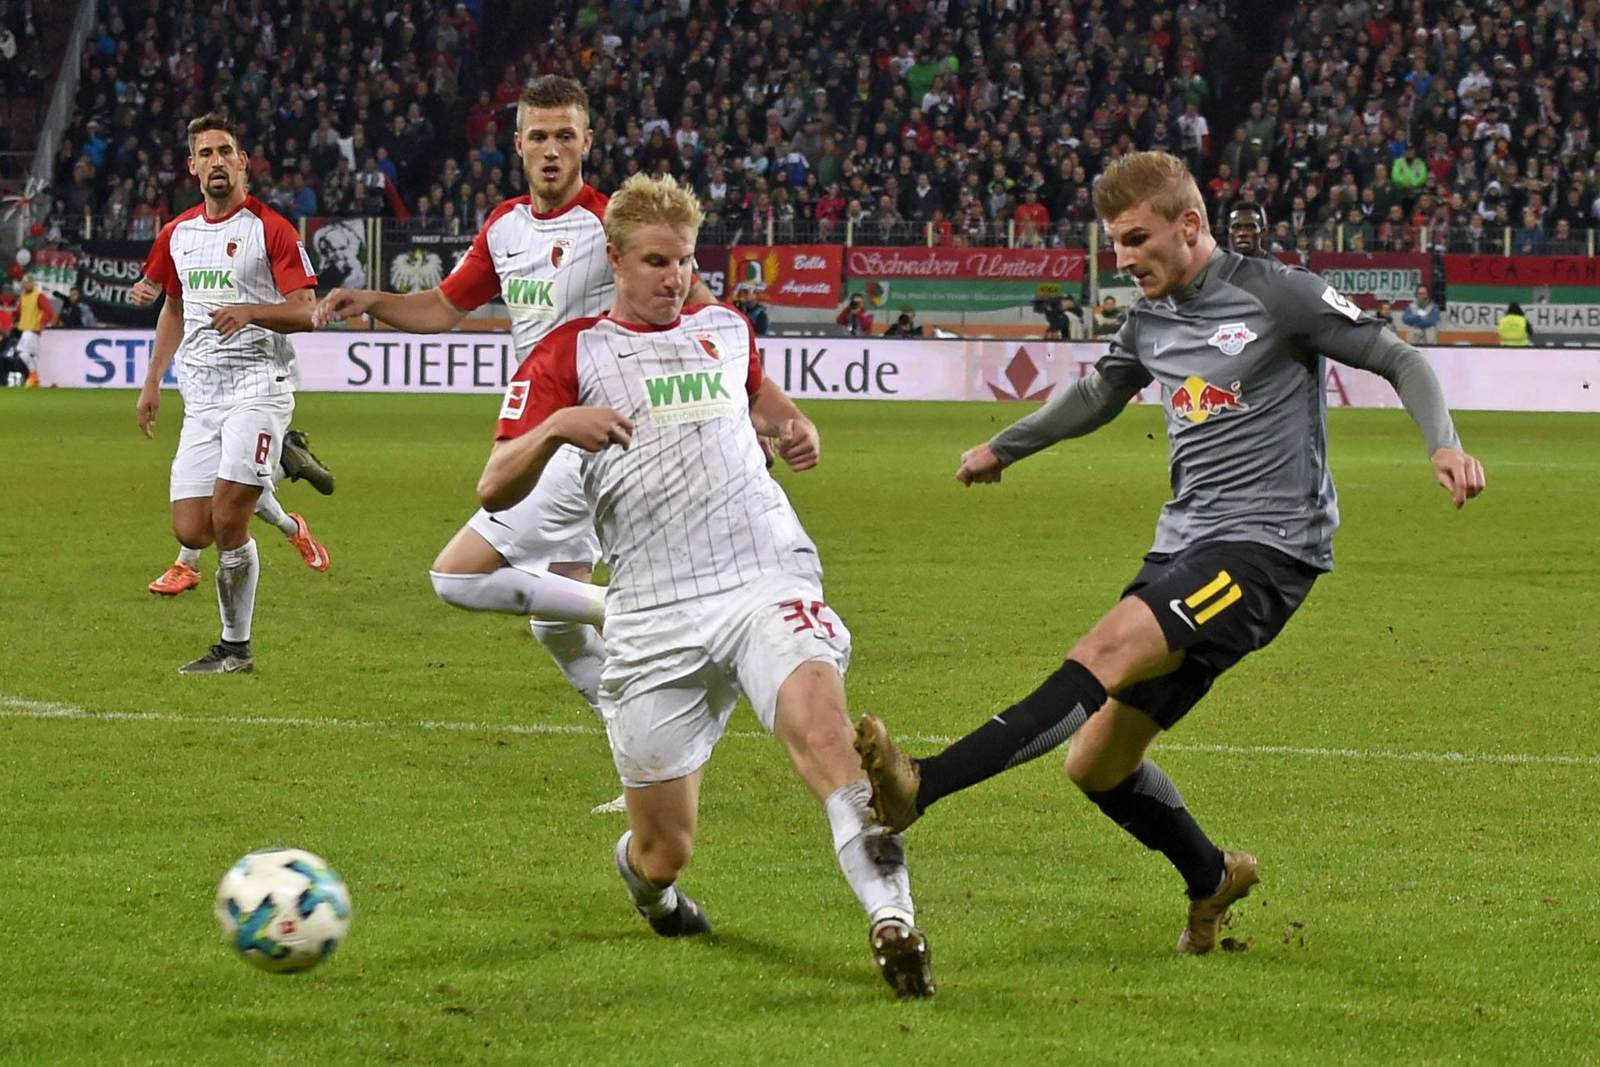 LEIPZIG - AUGSBURG SOCCER PREDICTION